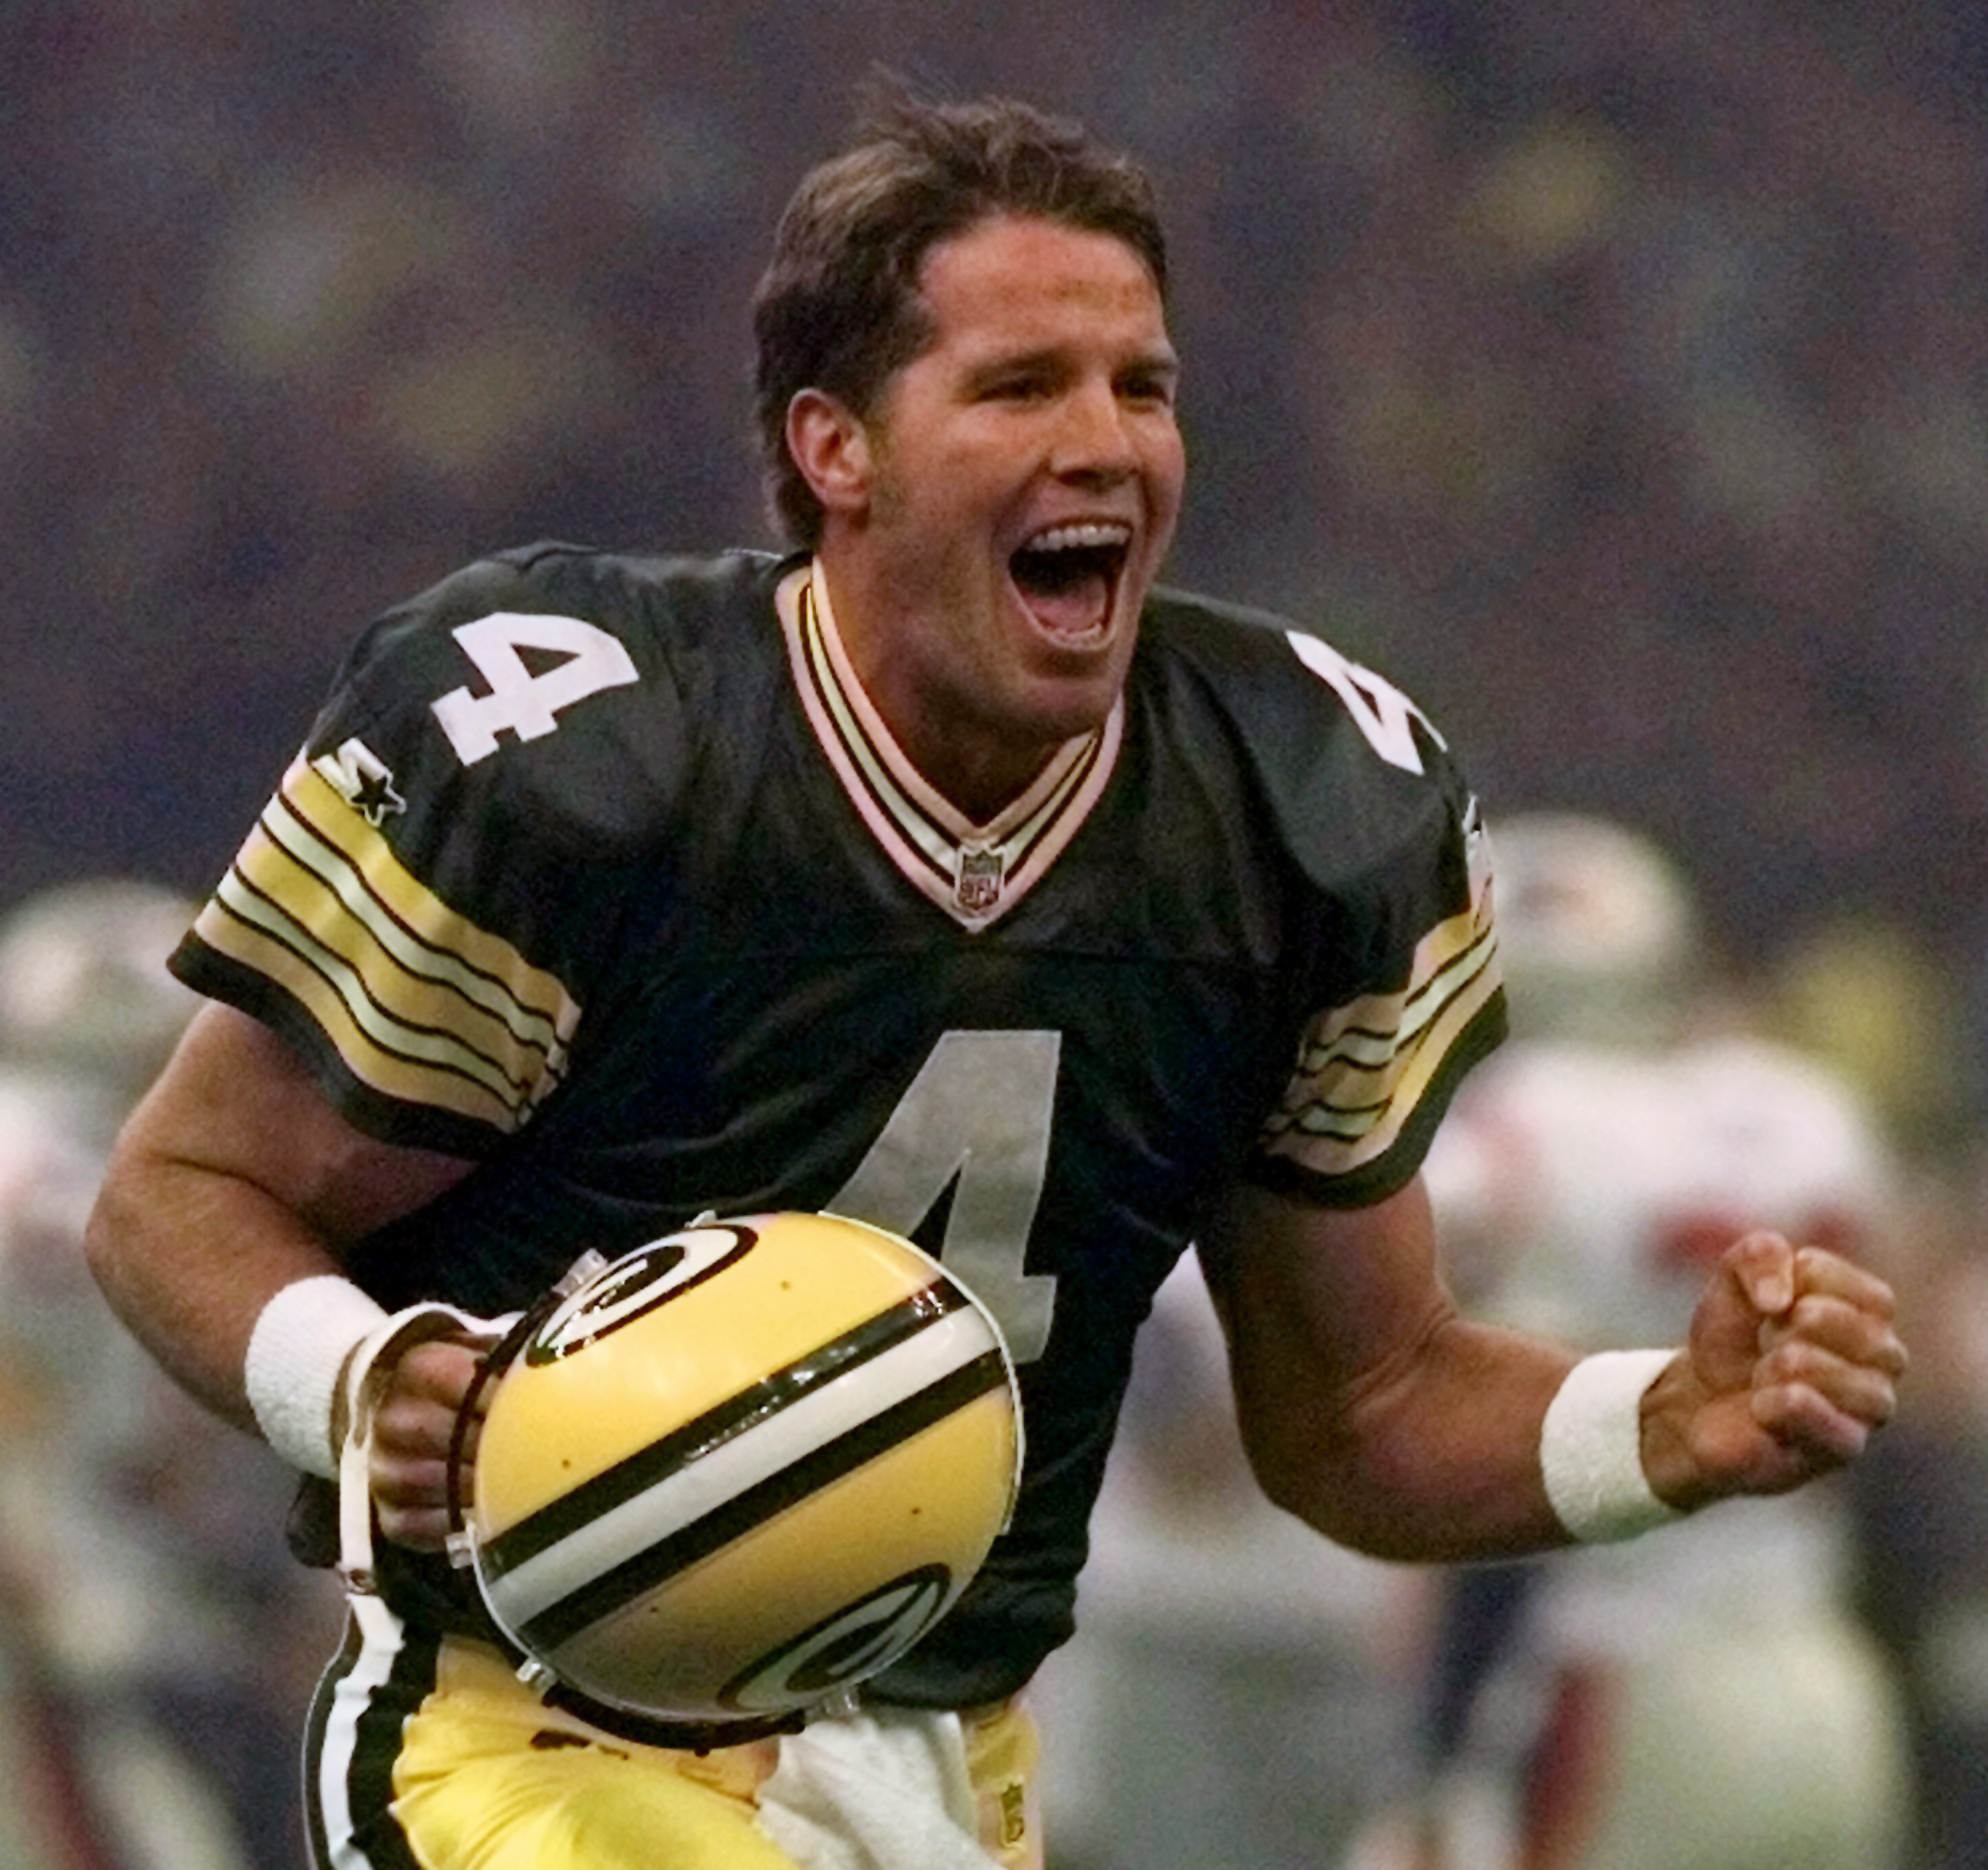 FILE - This Jan. 26, 1997, file photo shows Green Bay Packers quarterback Brett Favre celebrating after throwing a touchdown pass to Andre Rison during first quarter action at Super Bowl XXXI in New Orleans. The great thaw in Green Bay is nearly complete.